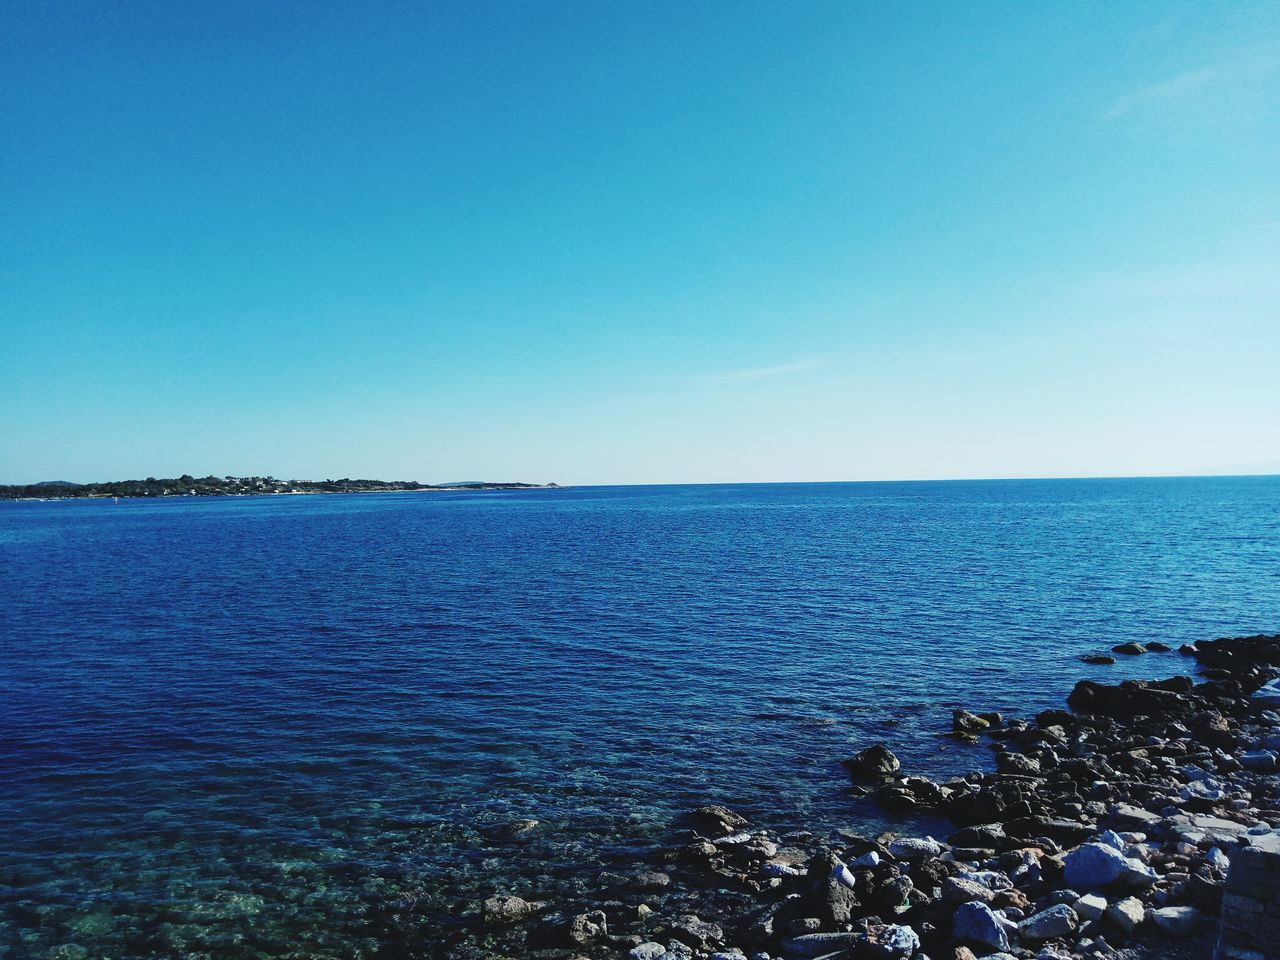 Sea Blue Beach Horizon Over Water Tranquility Water Scenics Nature Sky Clear Sky Travel Destinations Beauty In Nature Outdoors Day No People Beauty In Nature Greece Glyfada Greece Memories Reflection Vacation Destination Greece Photos Vacation Time